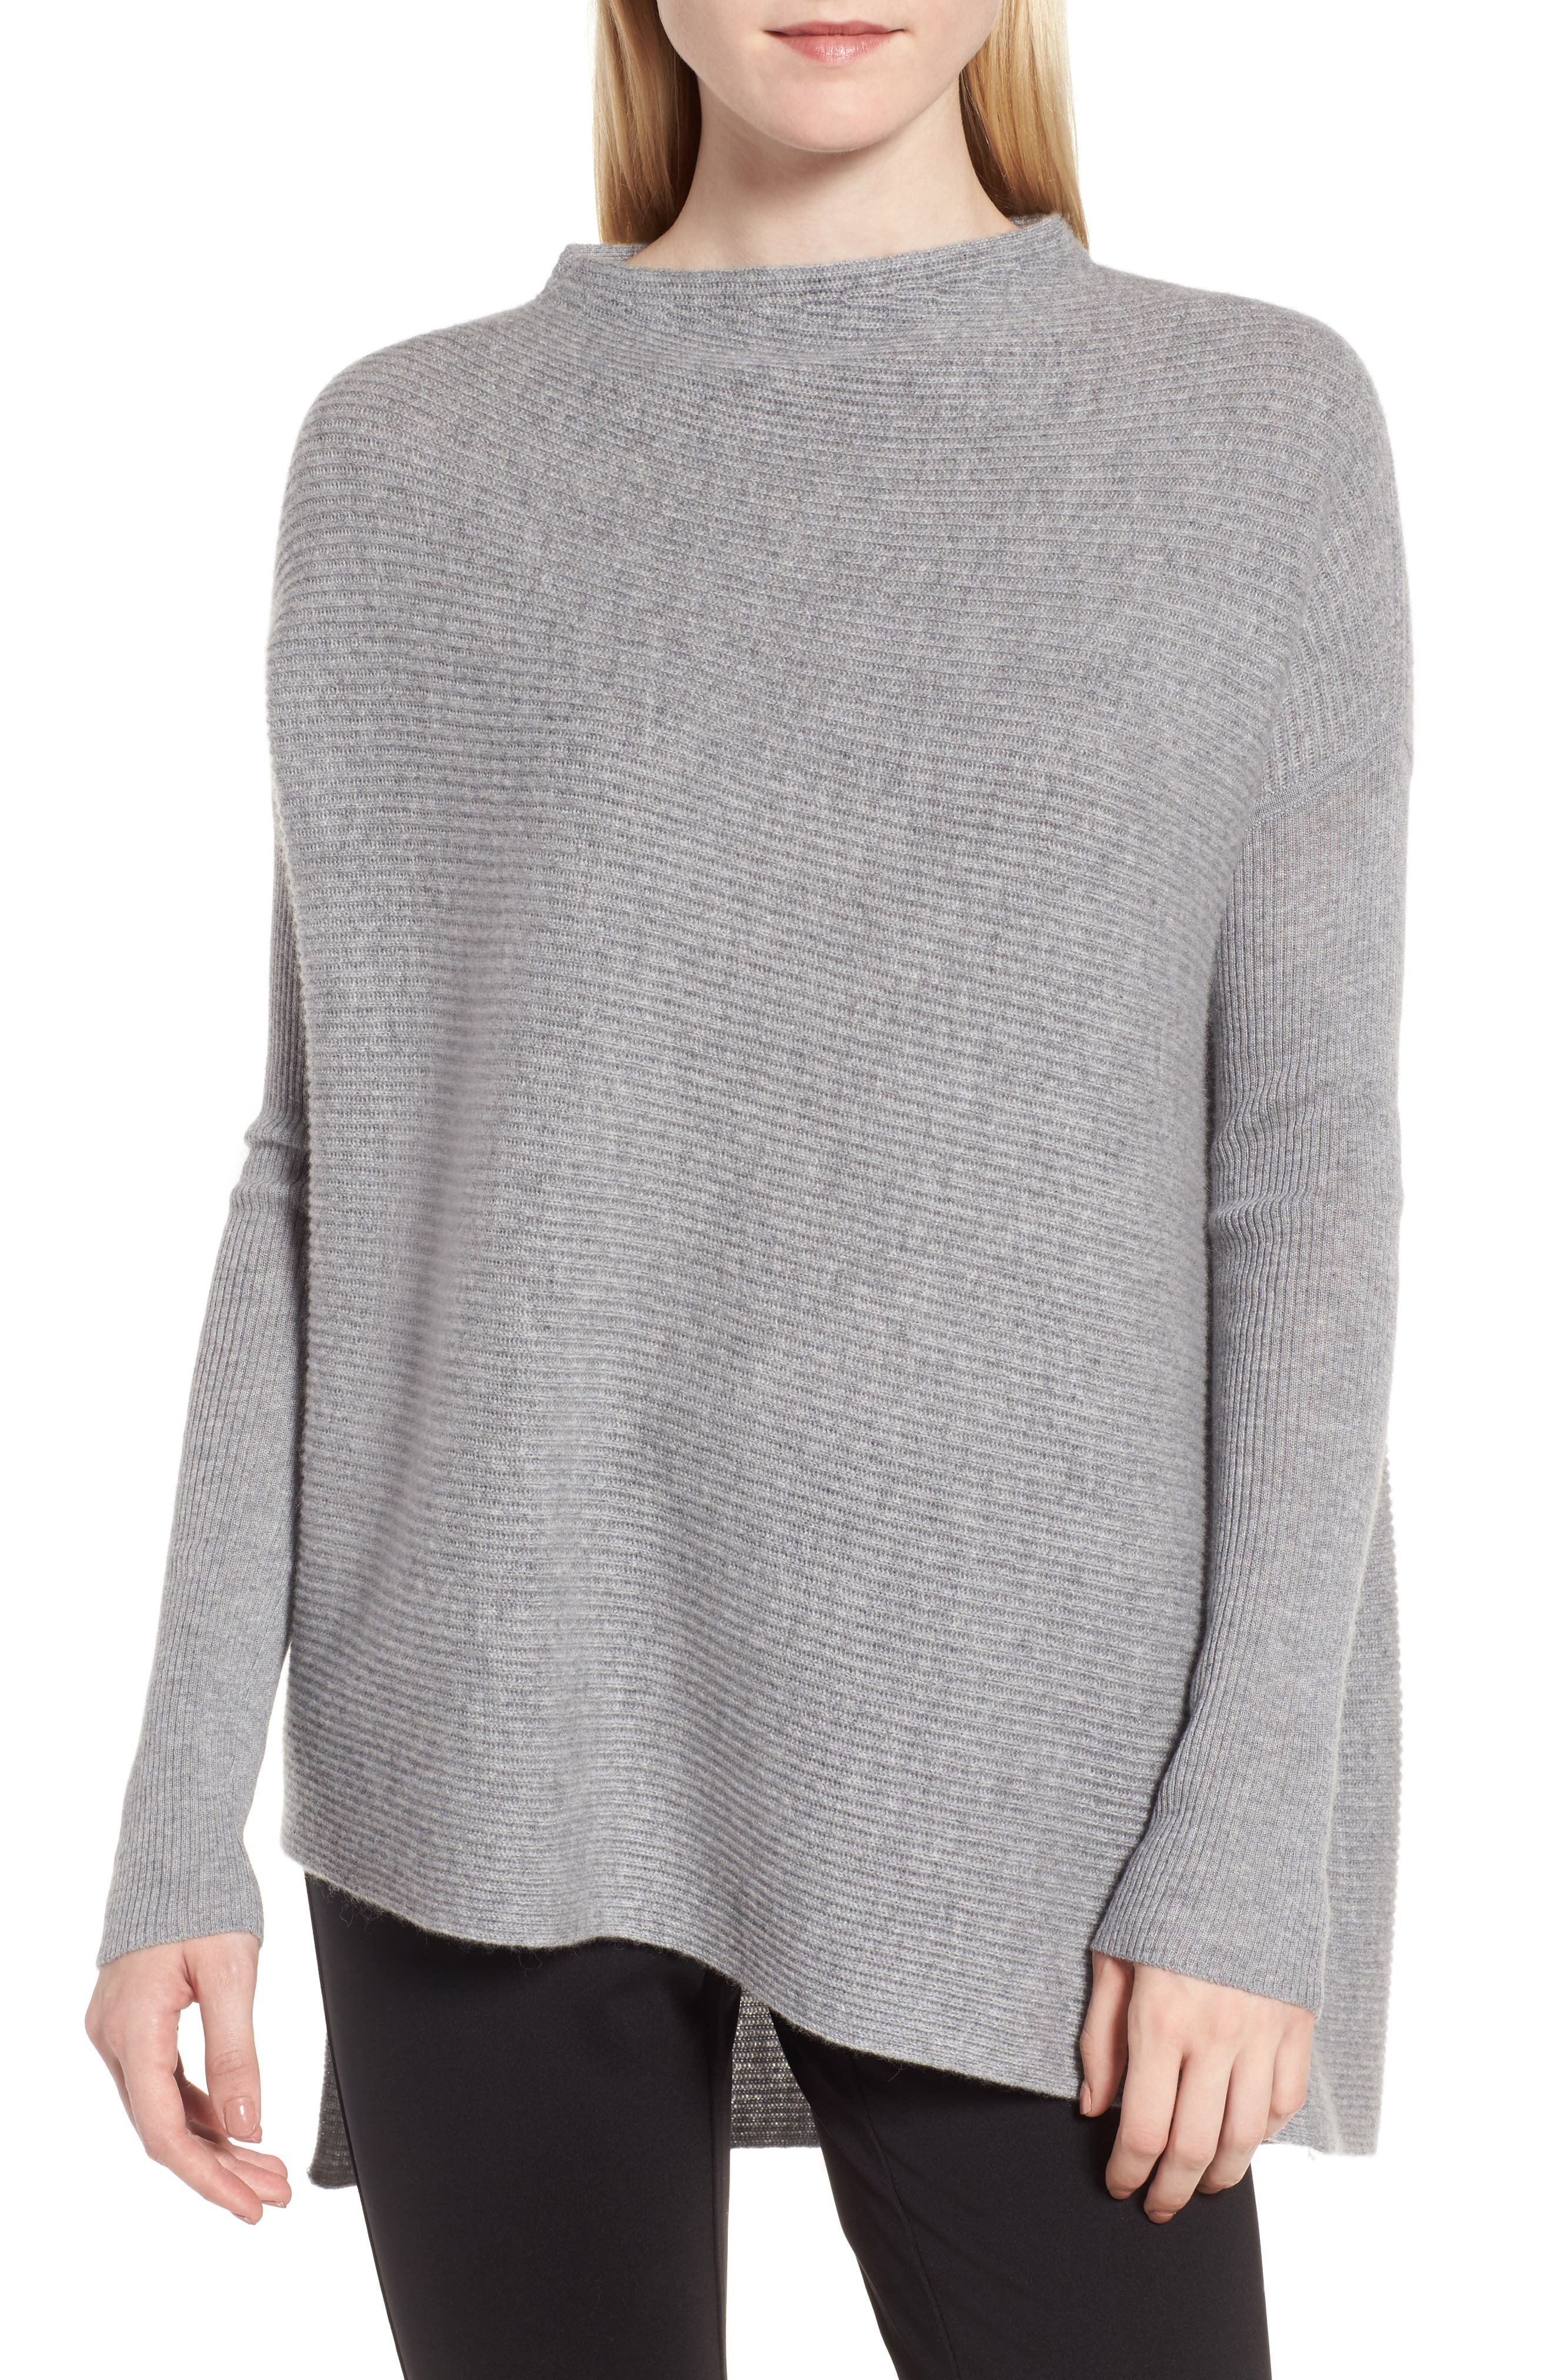 NORDSTROM SIGNATURE, Cashmere Asymmetrical Pullover, Main thumbnail 1, color, GREY FILIGREE HEATHER